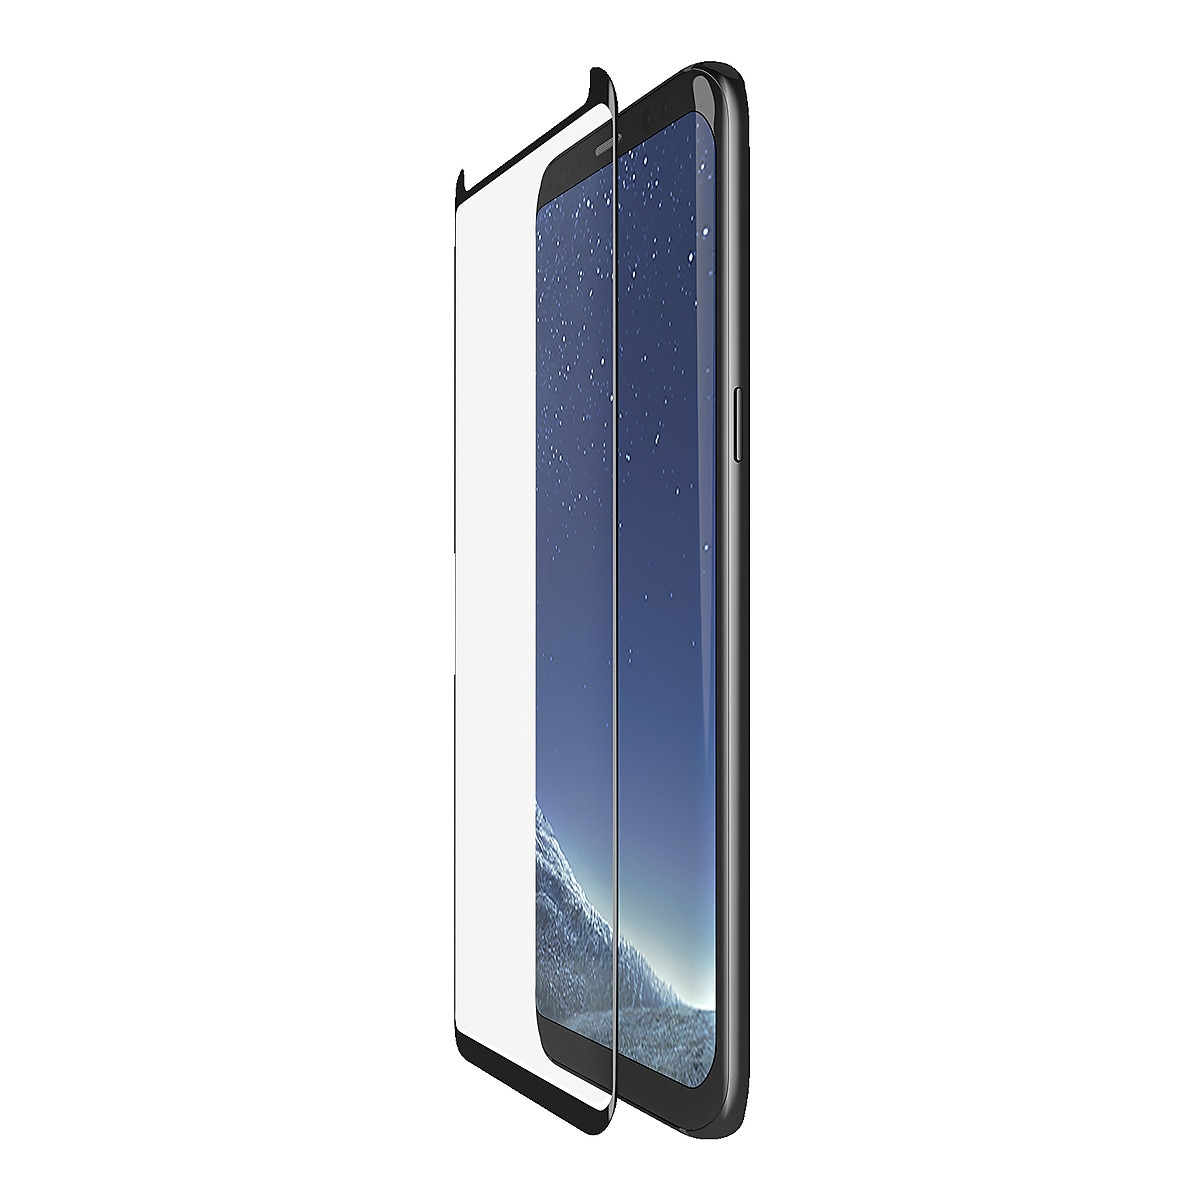 Belkin Screenforce TemperedCurve Screen Protector for Samsung Galaxy S8+